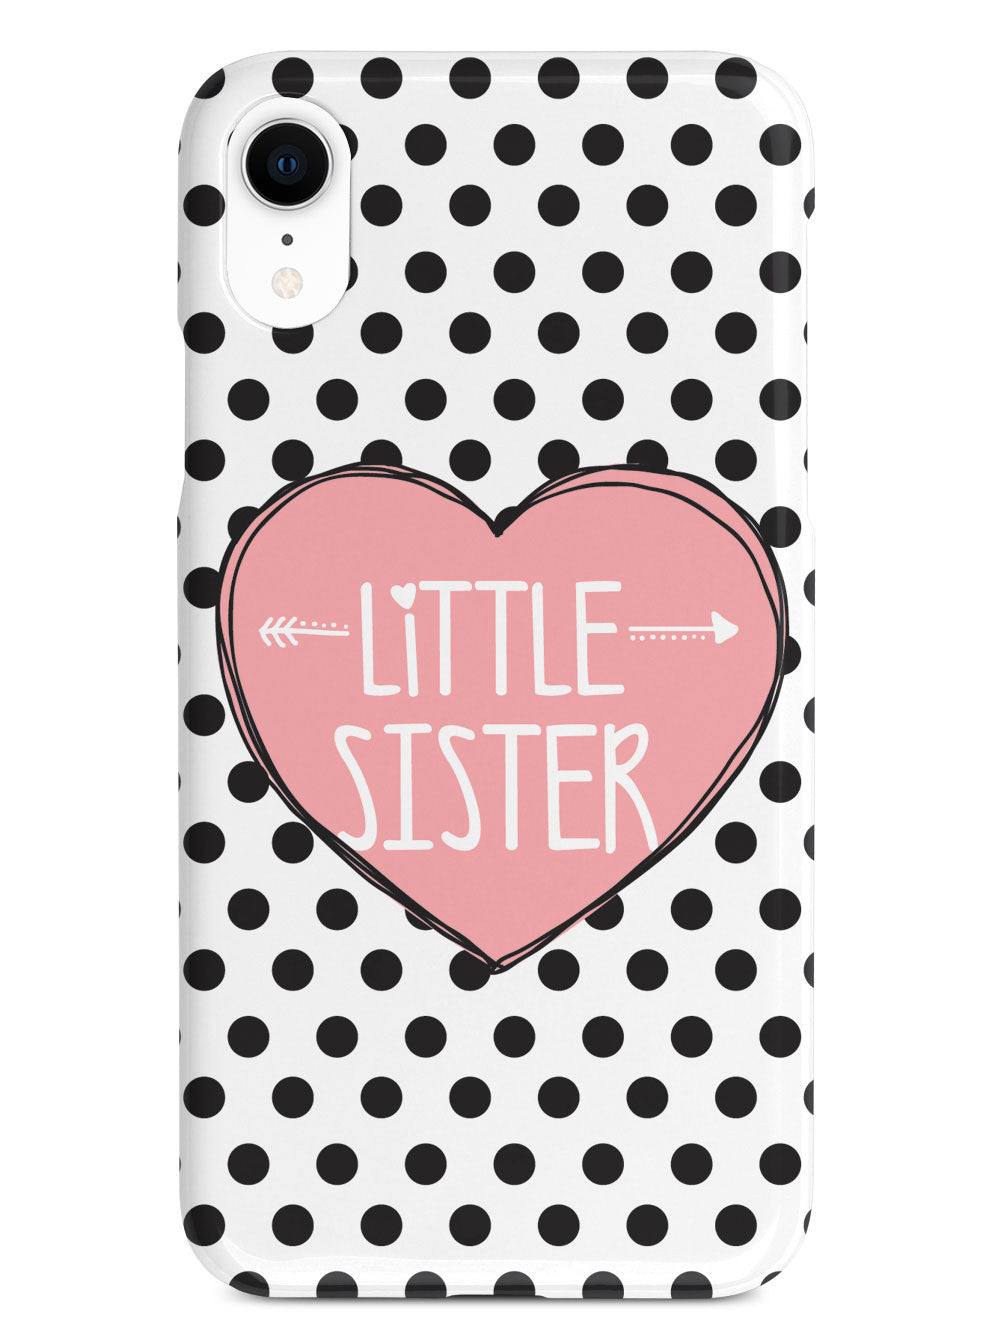 Sisterly Love - Little Sister - Polka Dots Case